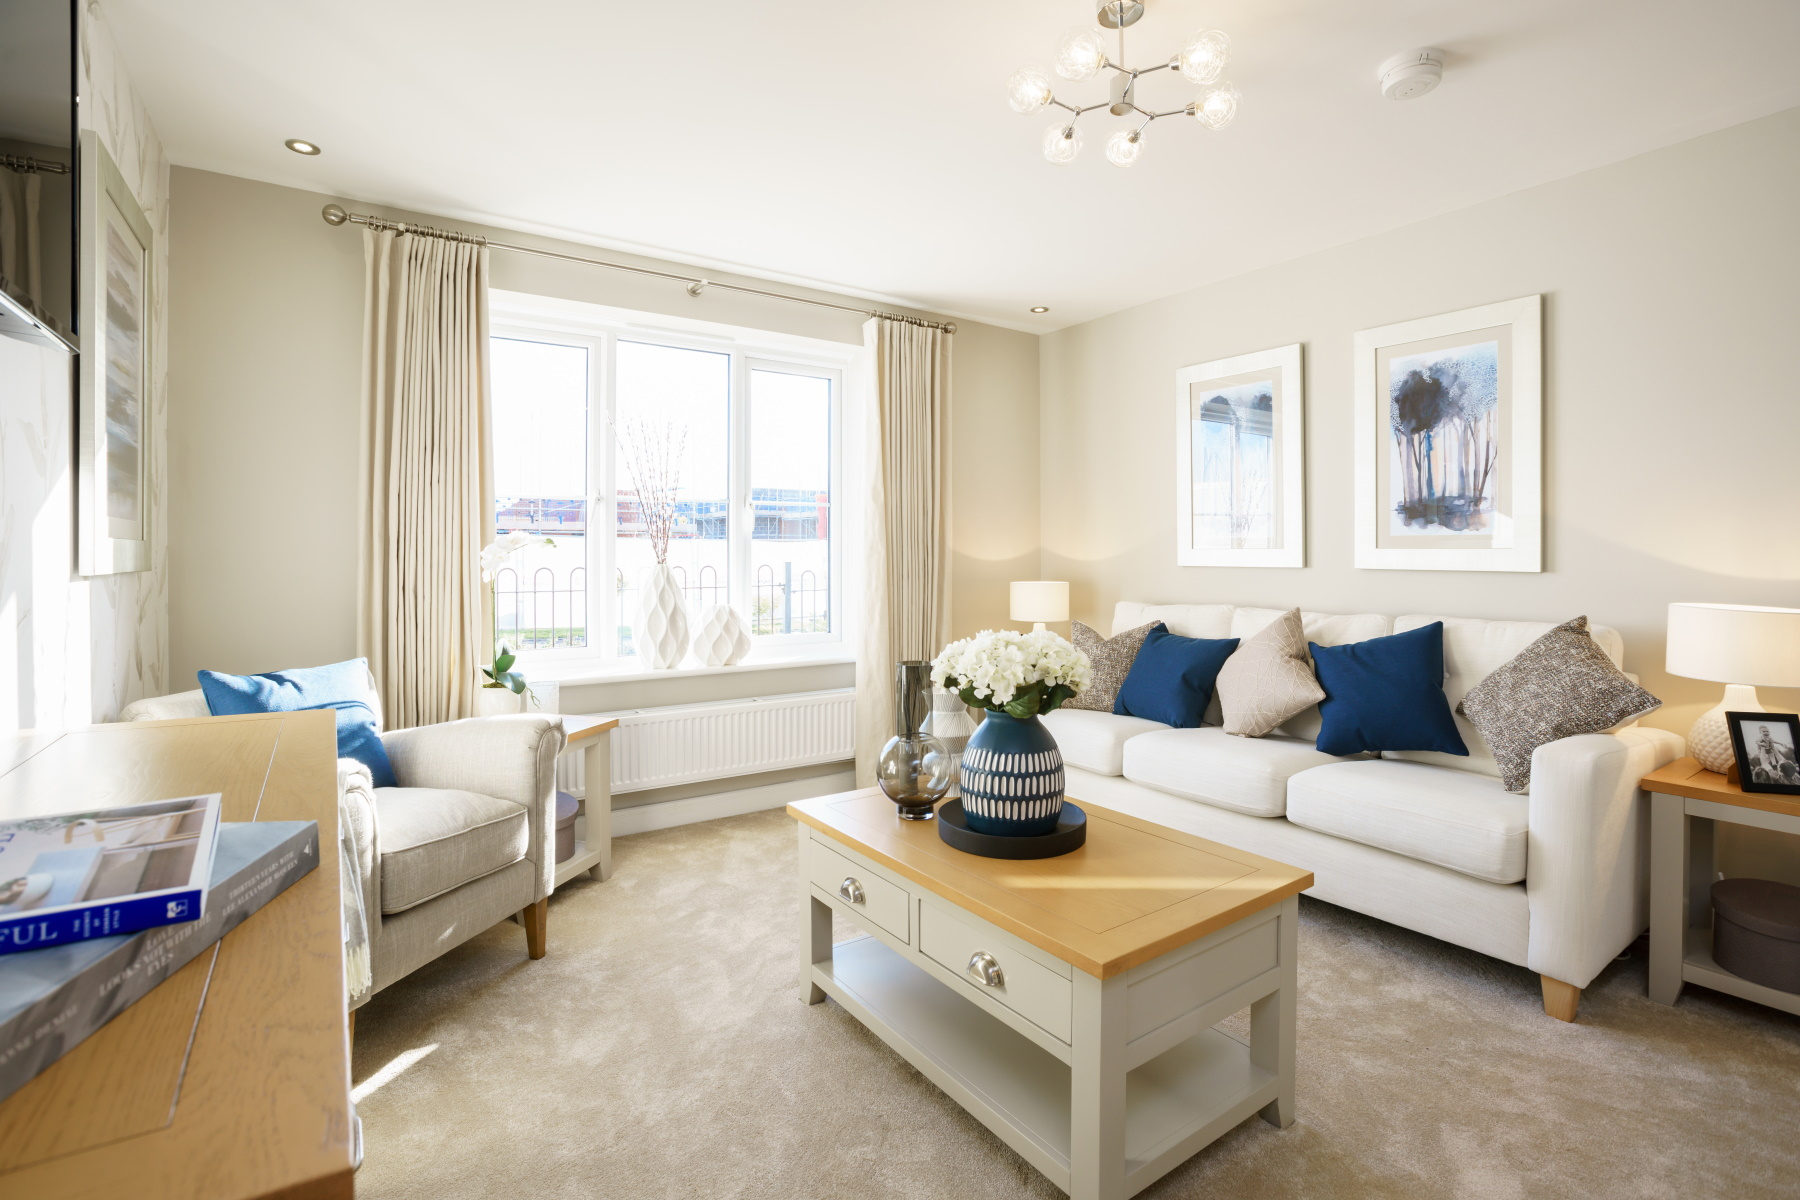 TW Exeter - Mountbatten Mews - Midford example living room